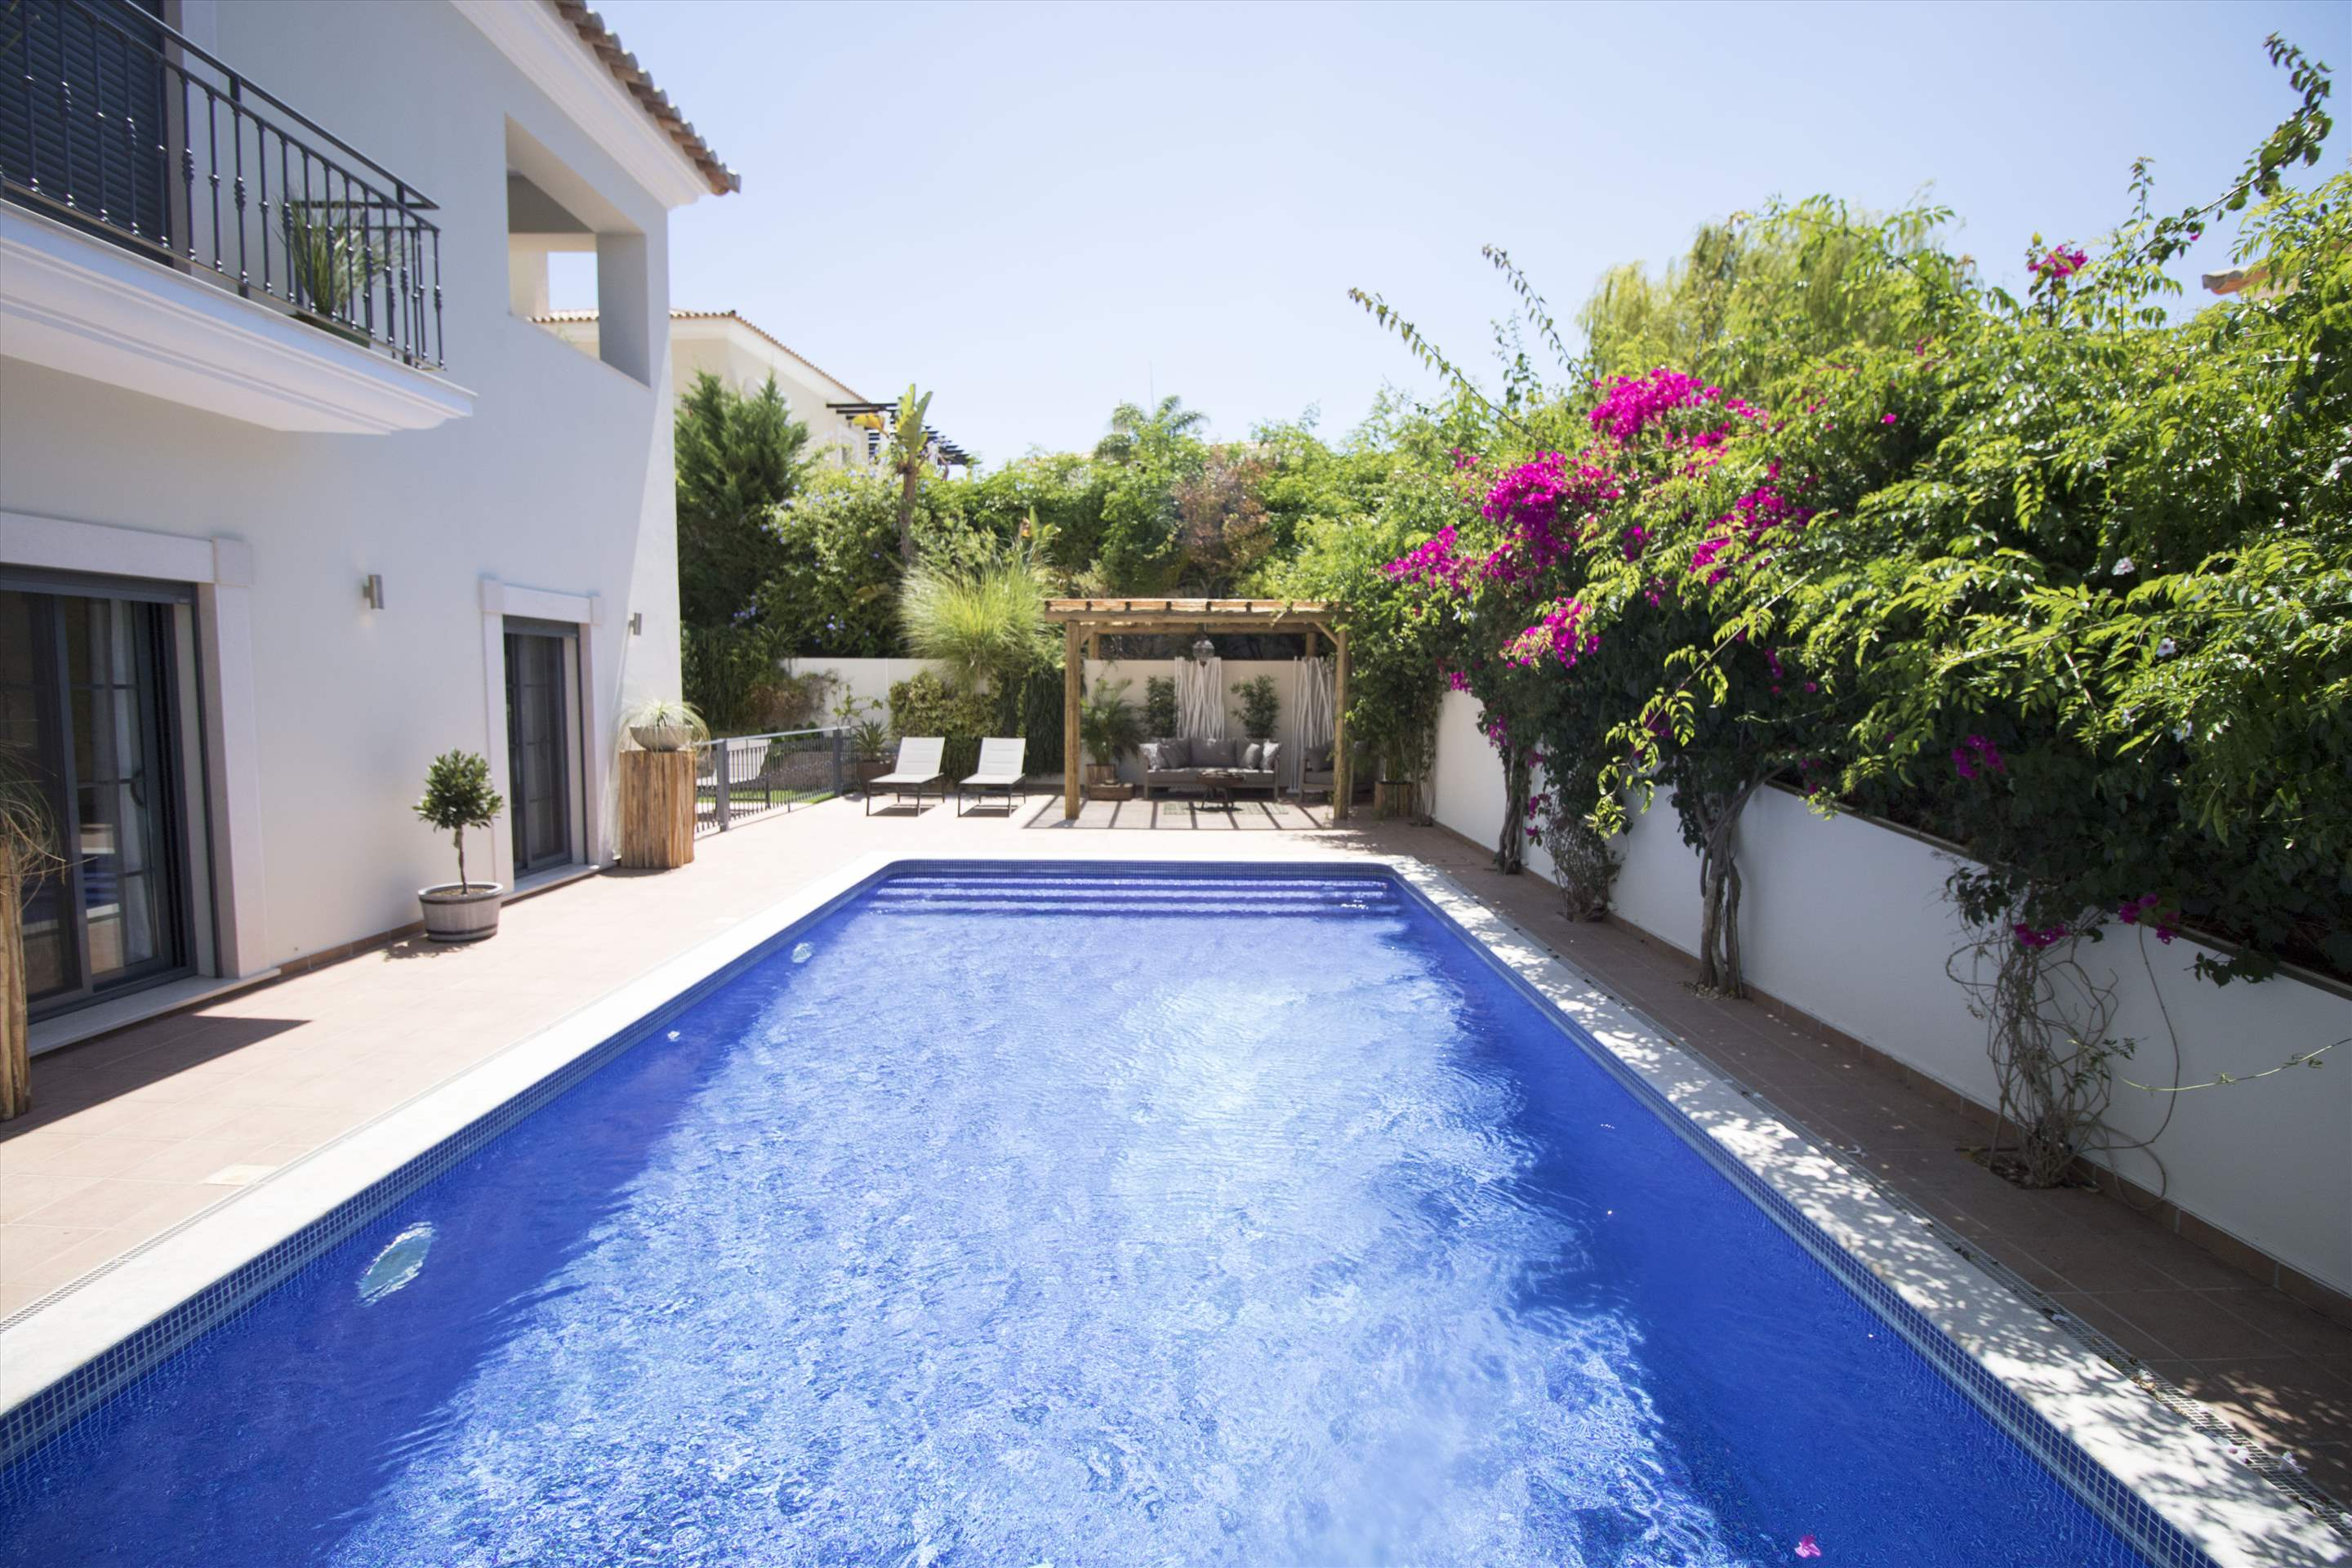 Villa Meryl, 5 bedroom villa in Vale do Lobo, Algarve Photo #1